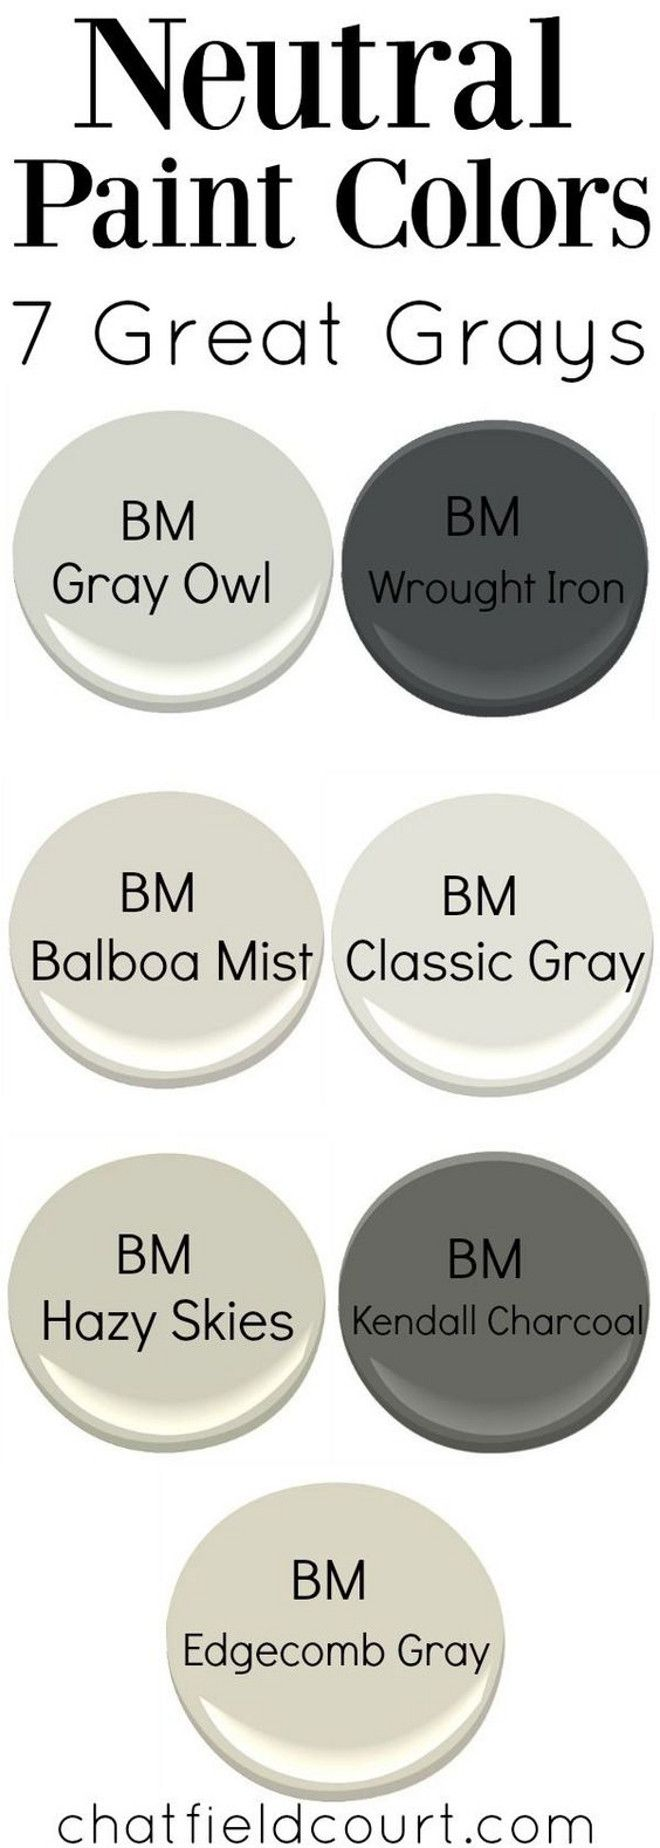 Popular Paint Colors 2017 7 great gray paint colorsbenjamin moore. | home bunch